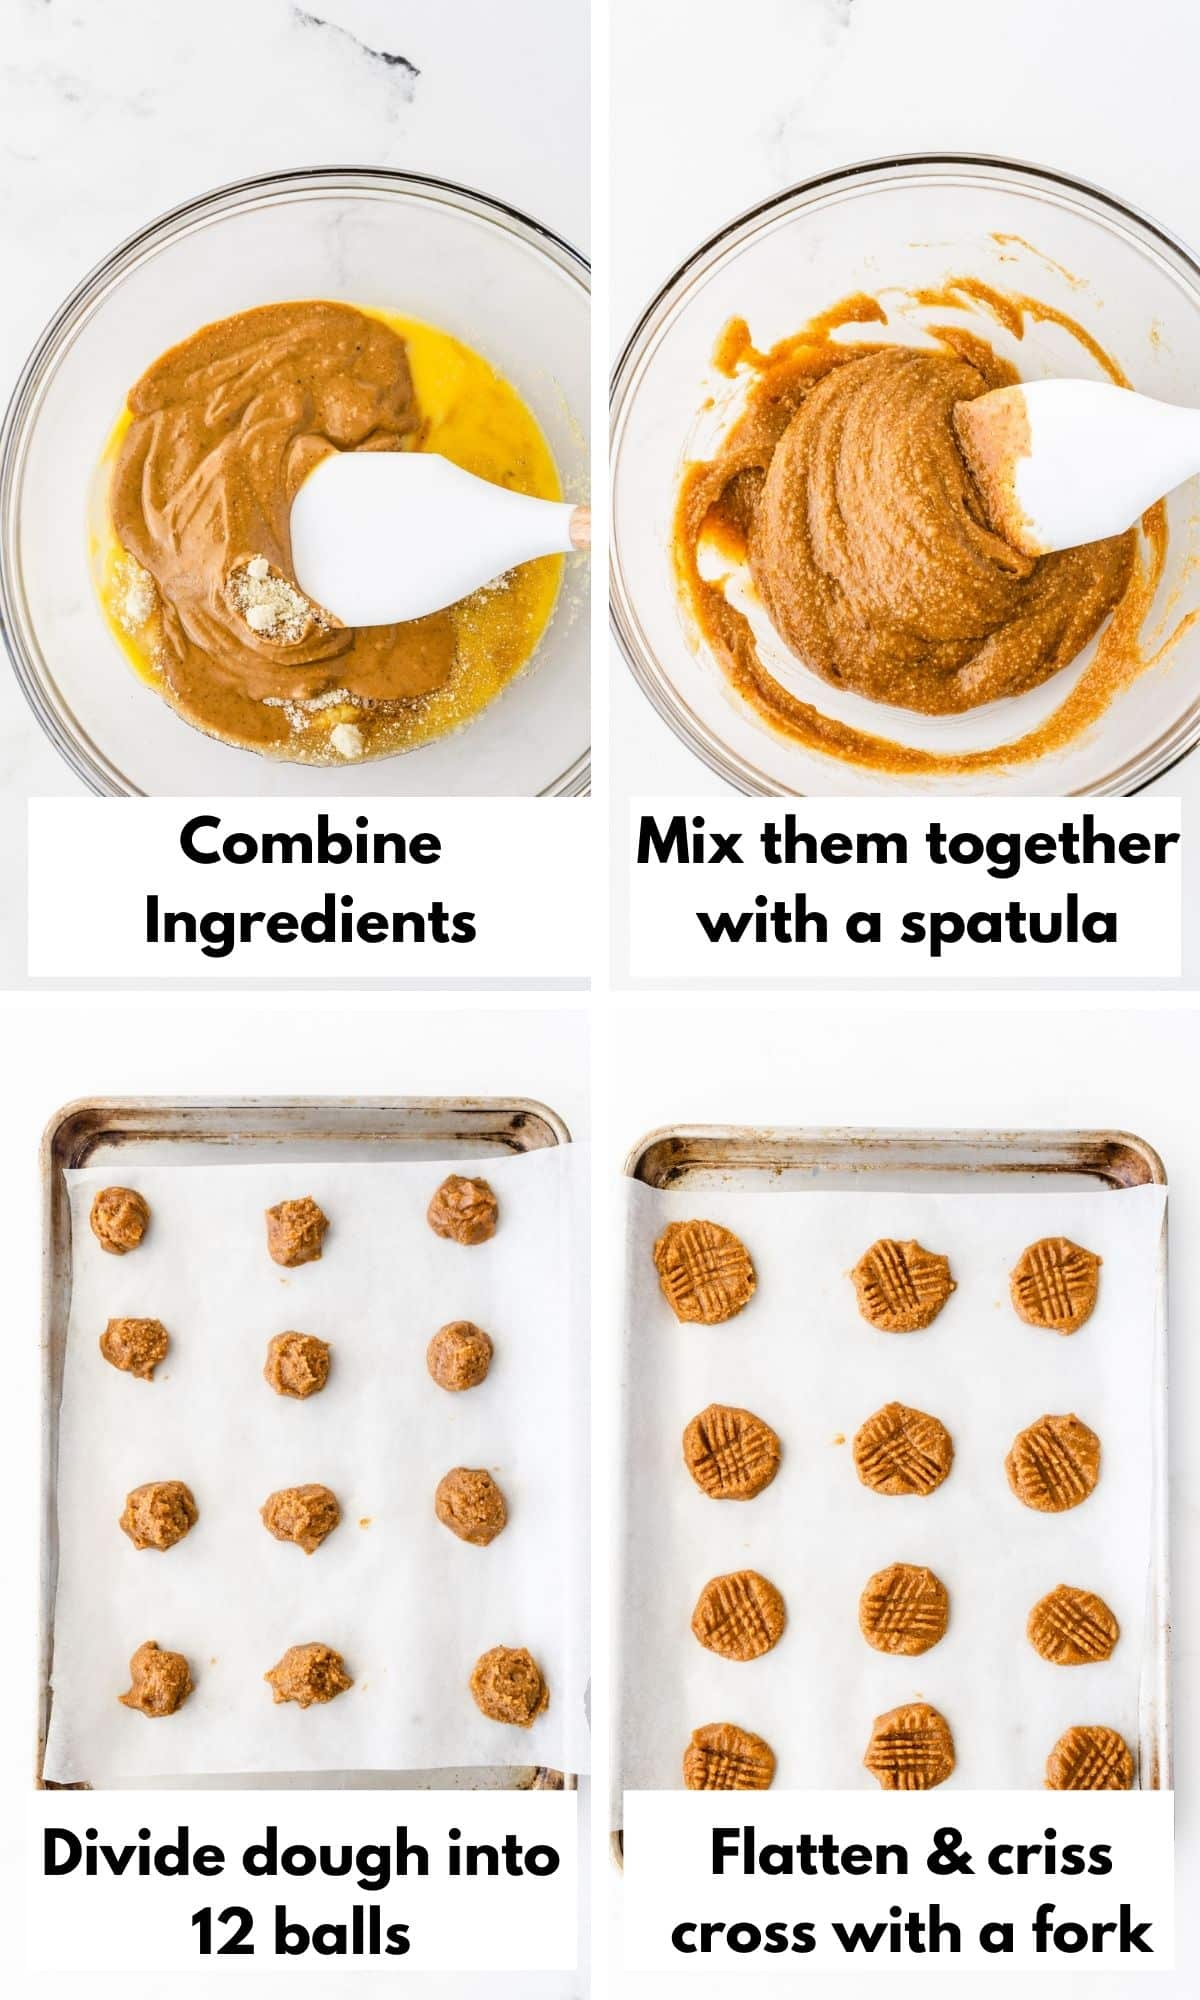 Pictures showing how to make peanut butter cookies